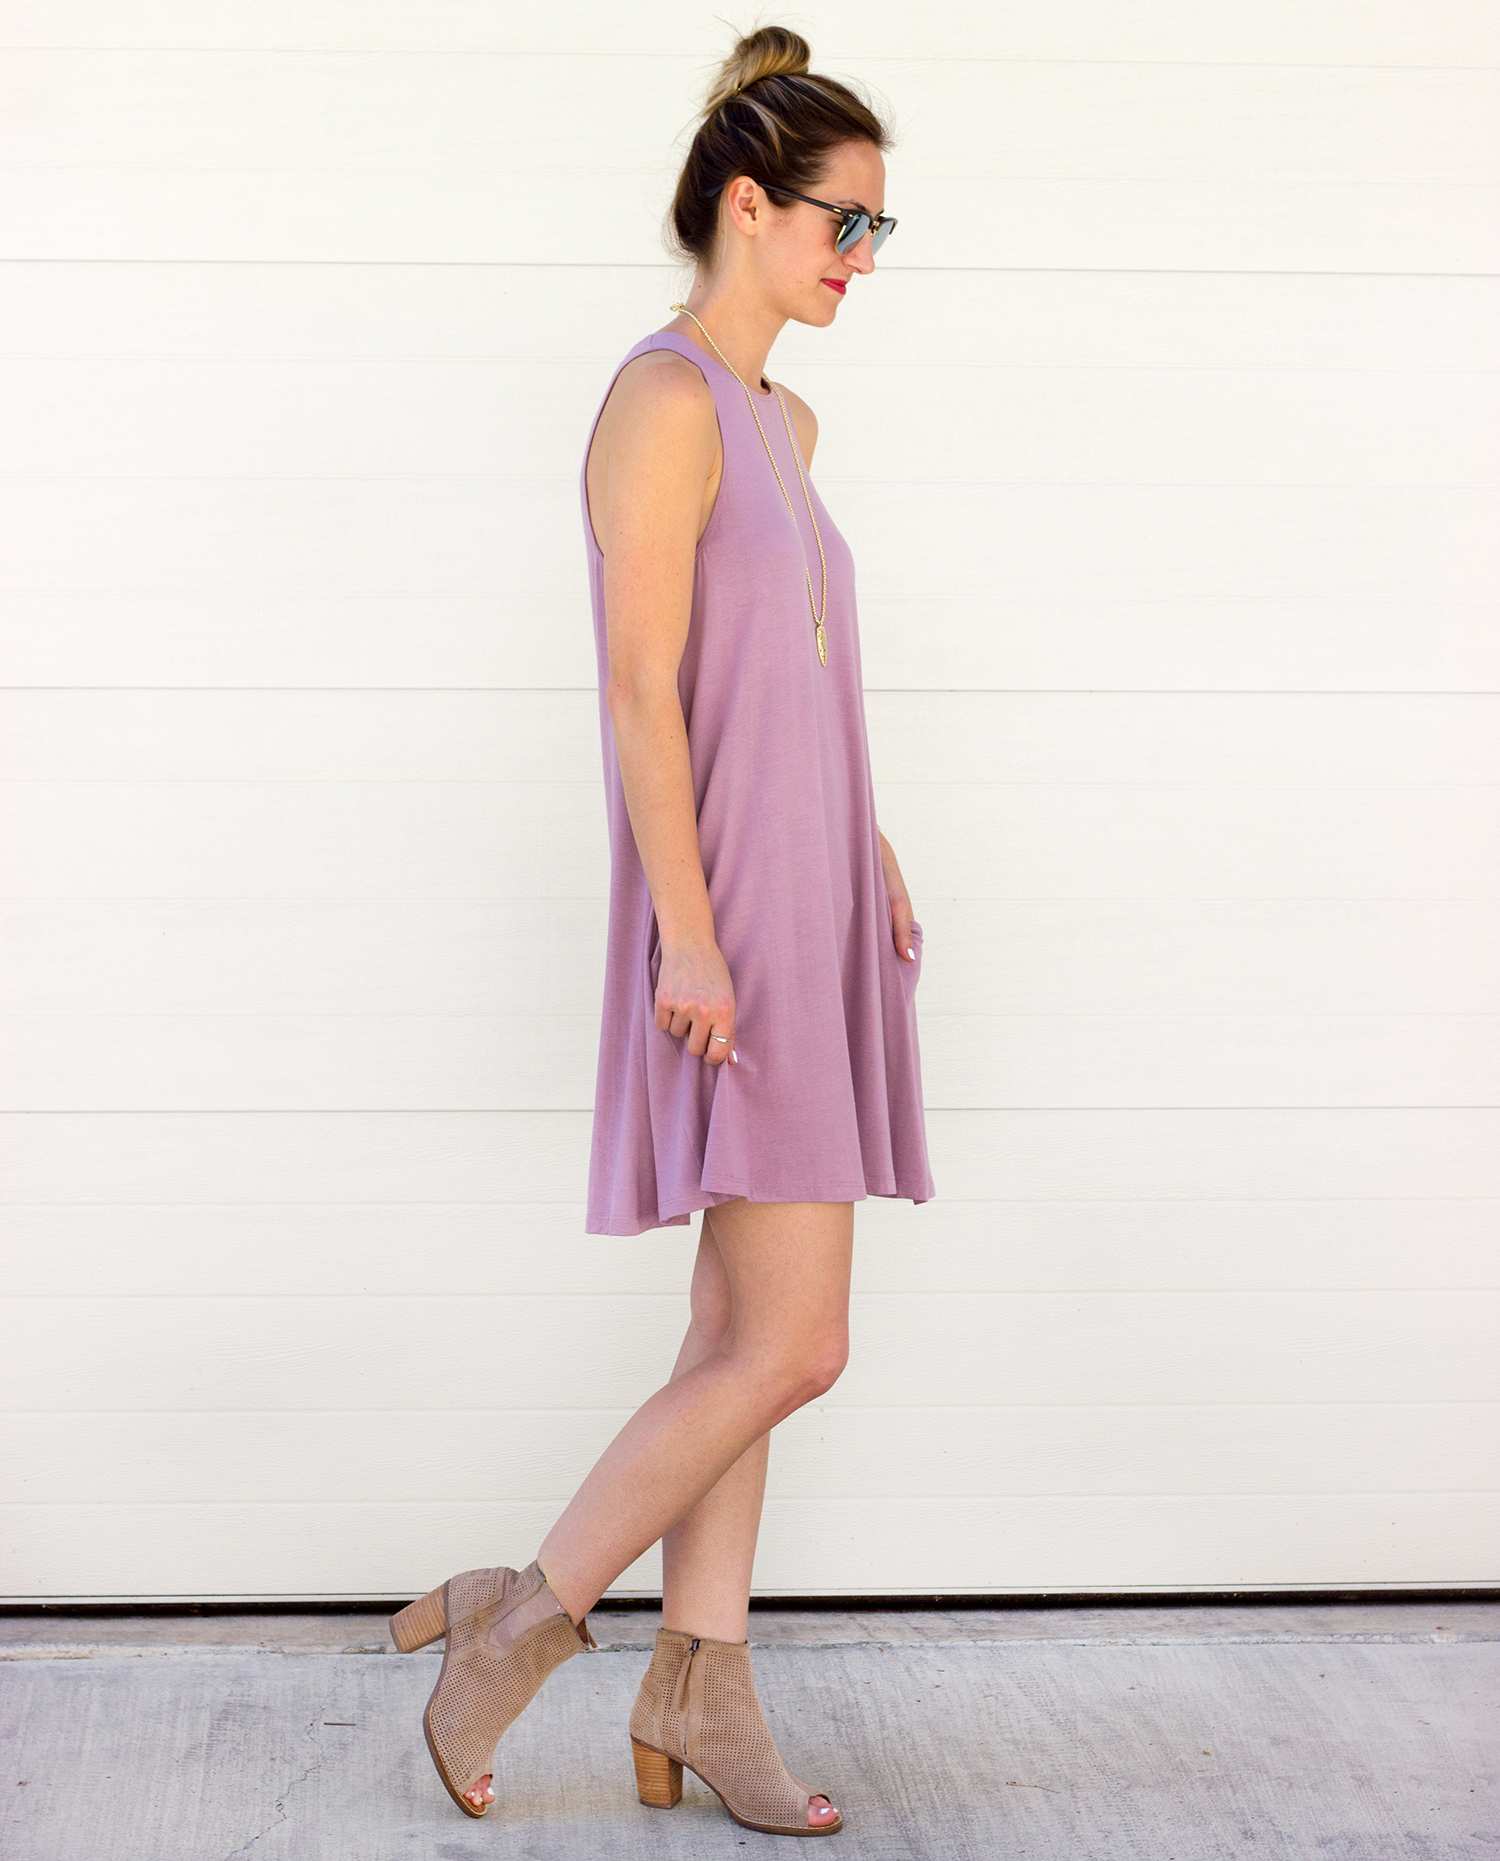 livvyland-blog-olivia-watson-austin-texas-fashion-blogger-lilac-shift-dress-cotton-pockets-purple-pink-toms-majorca-booties-boots-spring-outfit-3